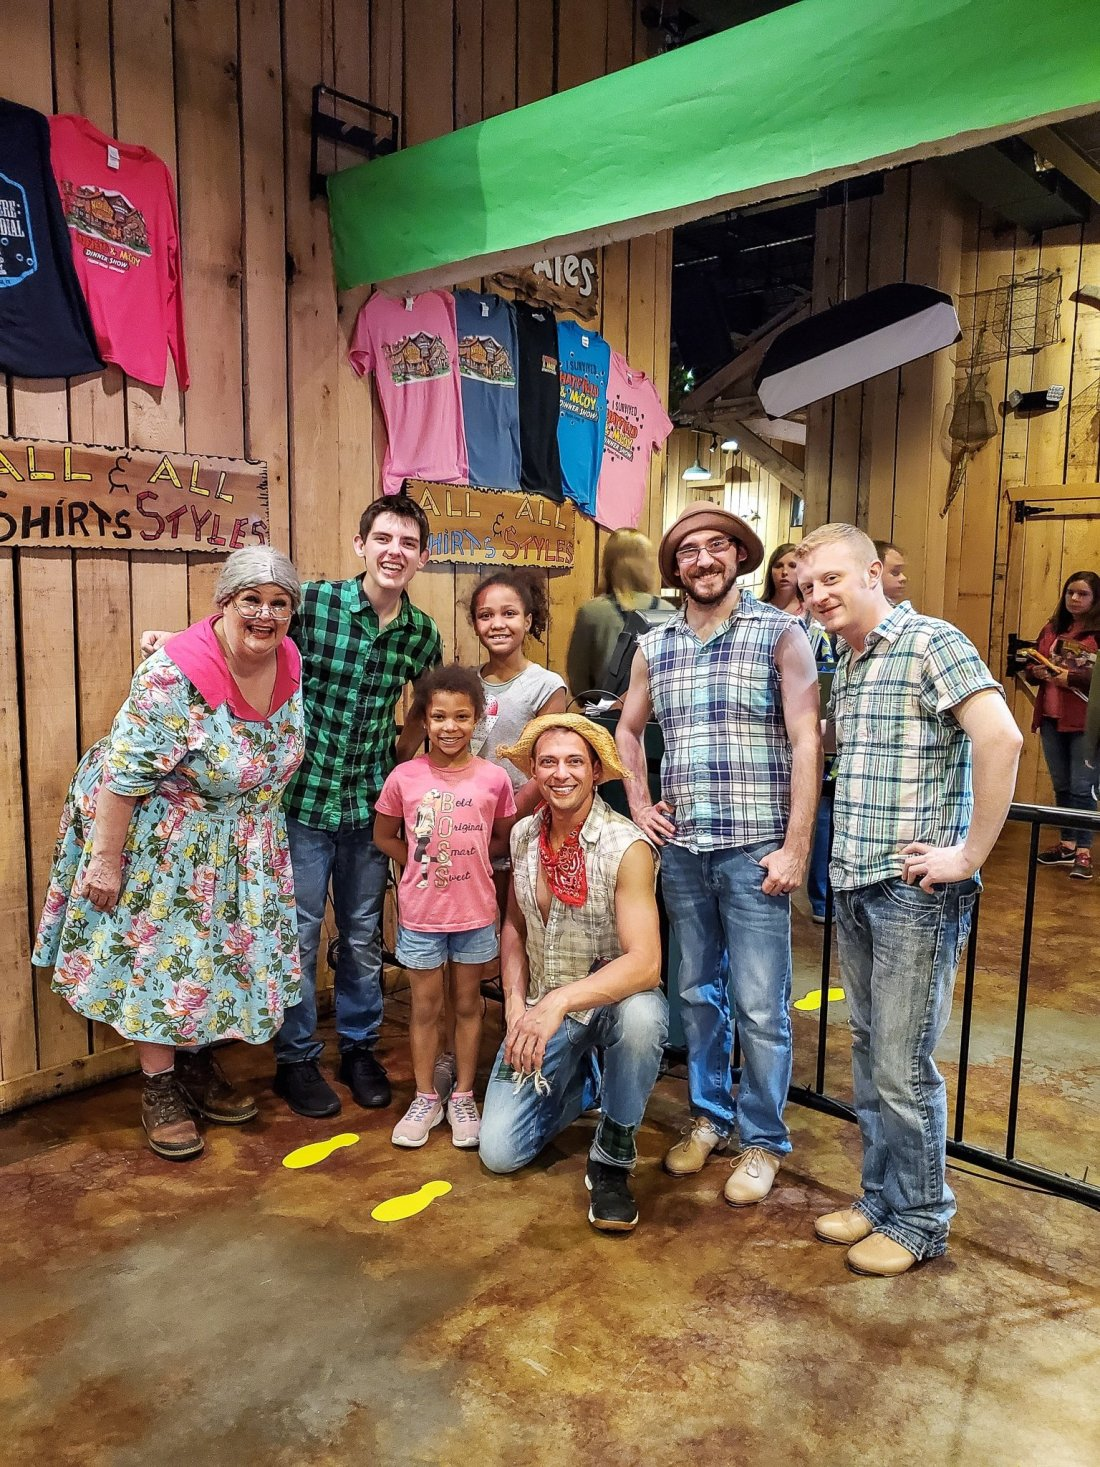 Hatfield and McCoy Family Feud Dinner Show Group Actor Photo. Nothing says entertainment like a good family feud in the Hatfield & McCoy Dinner Show. Laugh until your sides hurt in this hilarious show that offers an all you can eat southern style cooking dinner.